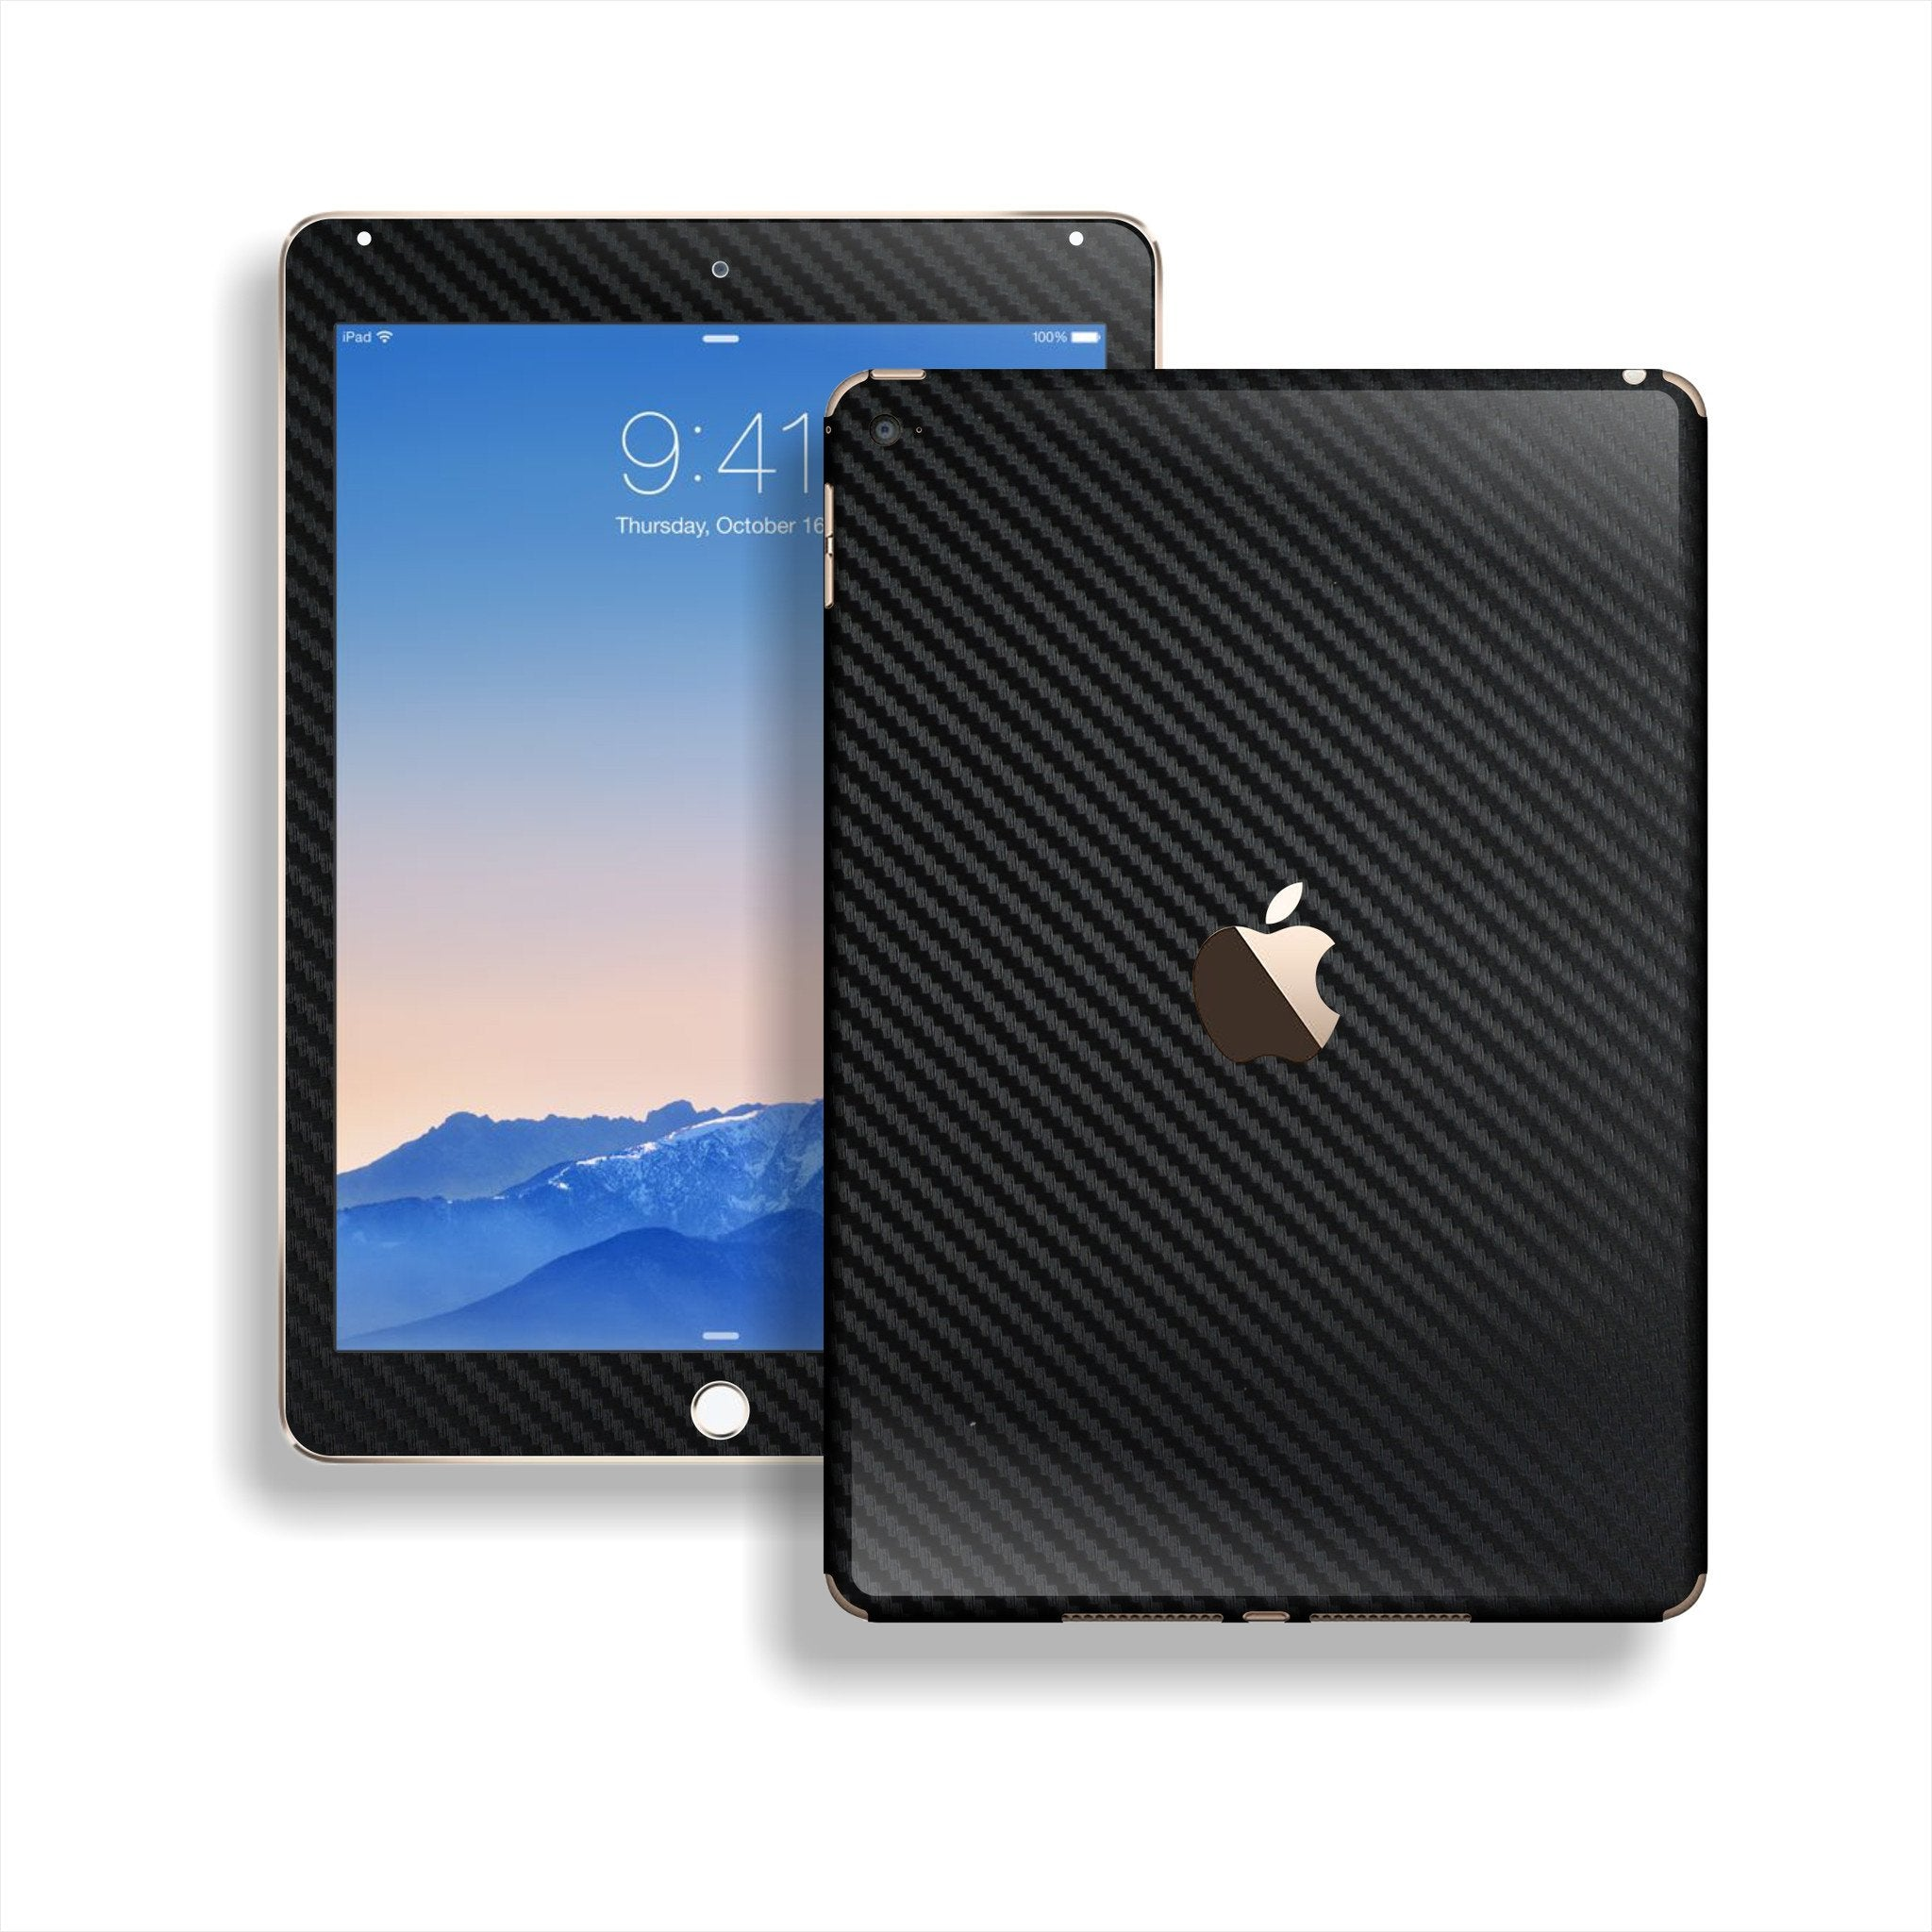 iPad Air 2 Black CARBON Fibre Fiber Skin Wrap Sticker Decal Cover Protector by EasySkinz